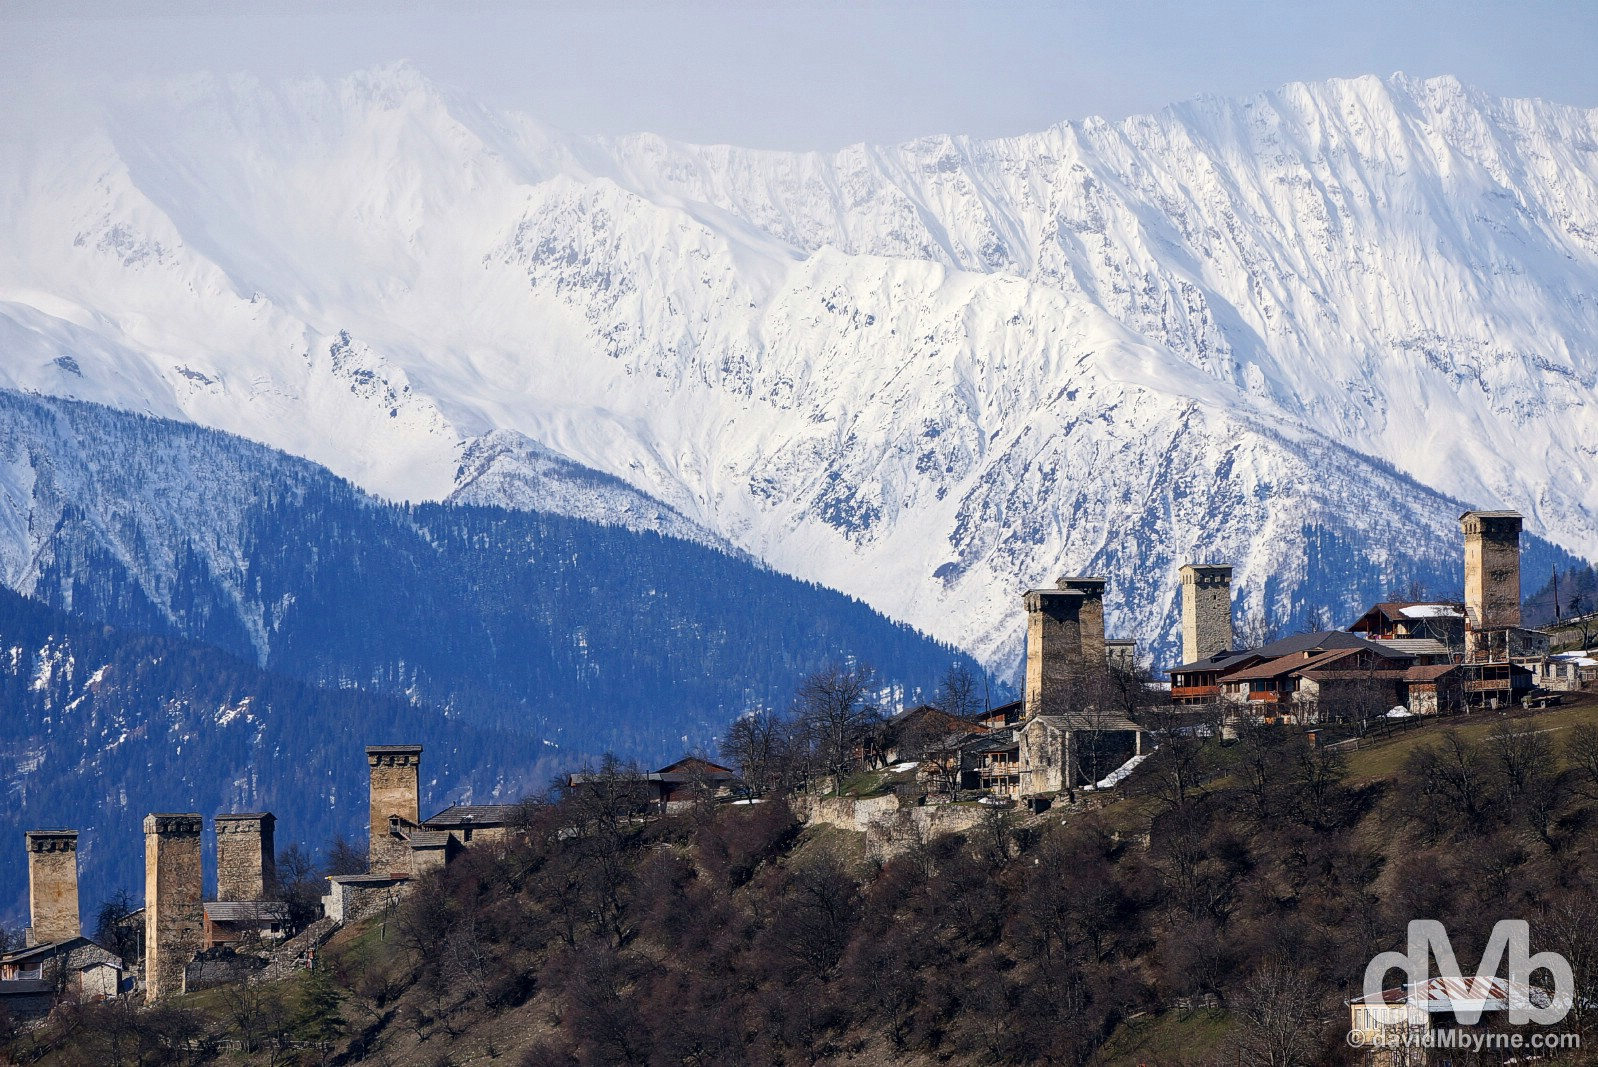 Svan Towers in the highland town of Mestia in the Caucasus Mountains in northwest Georgia. March 21, 2015.